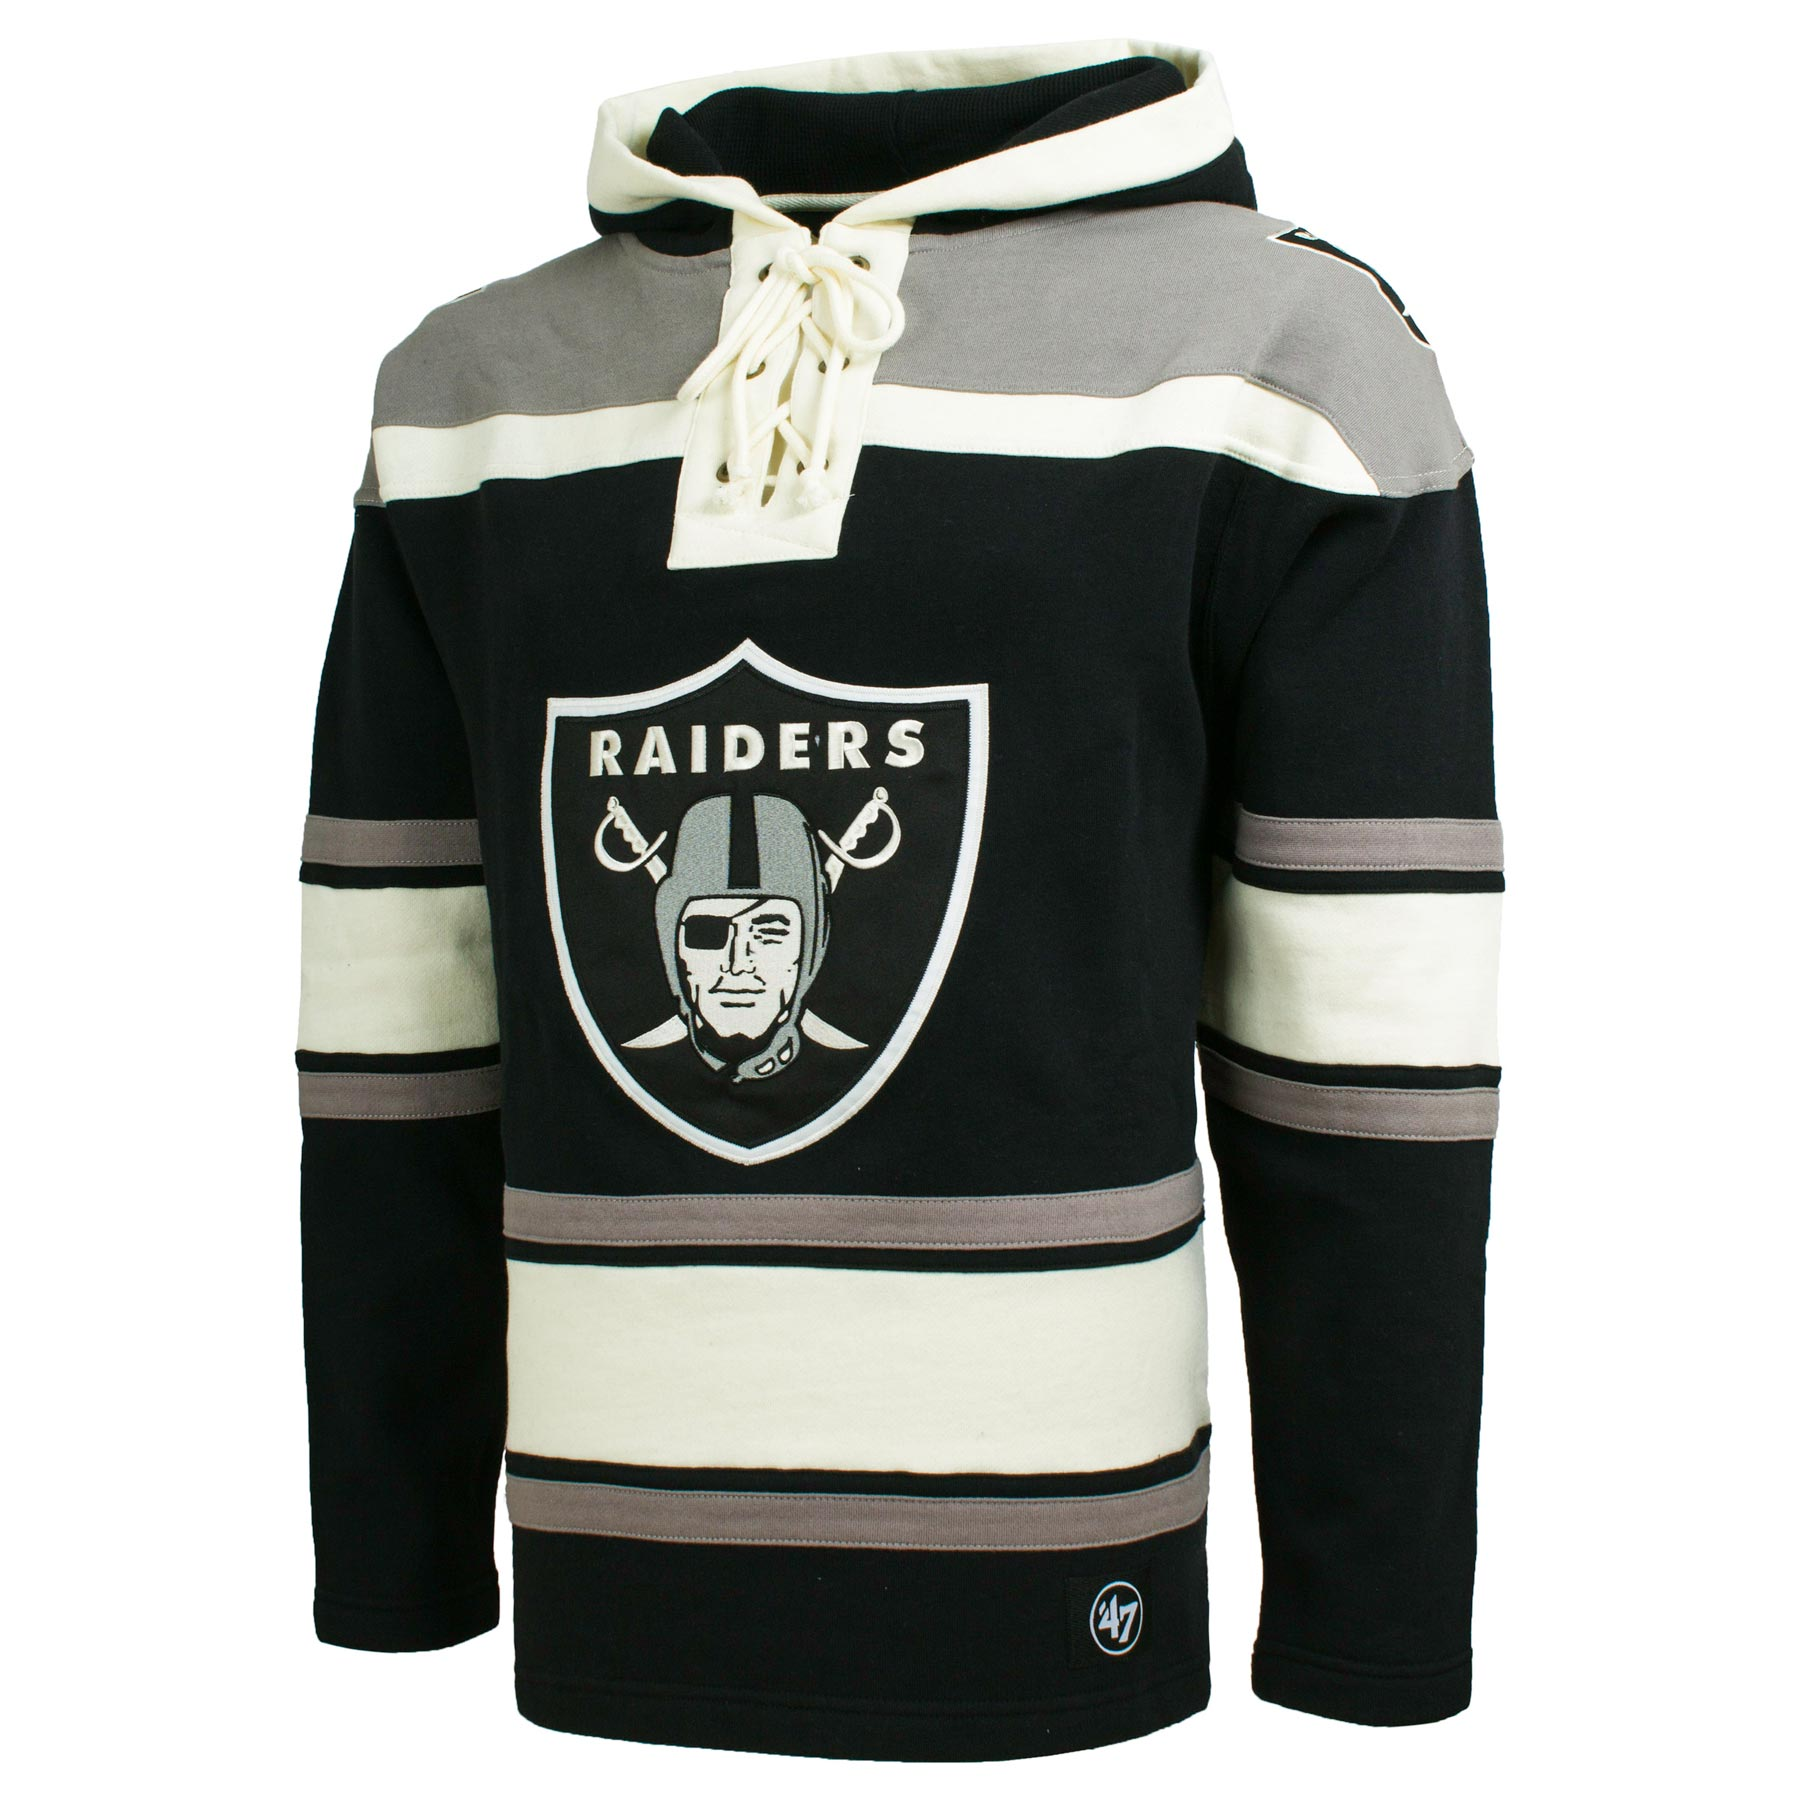 new arrivals dc2be 0c8bf Oakland Raiders NFL '47 Heavyweight Jersey Lacer Hoodie ...